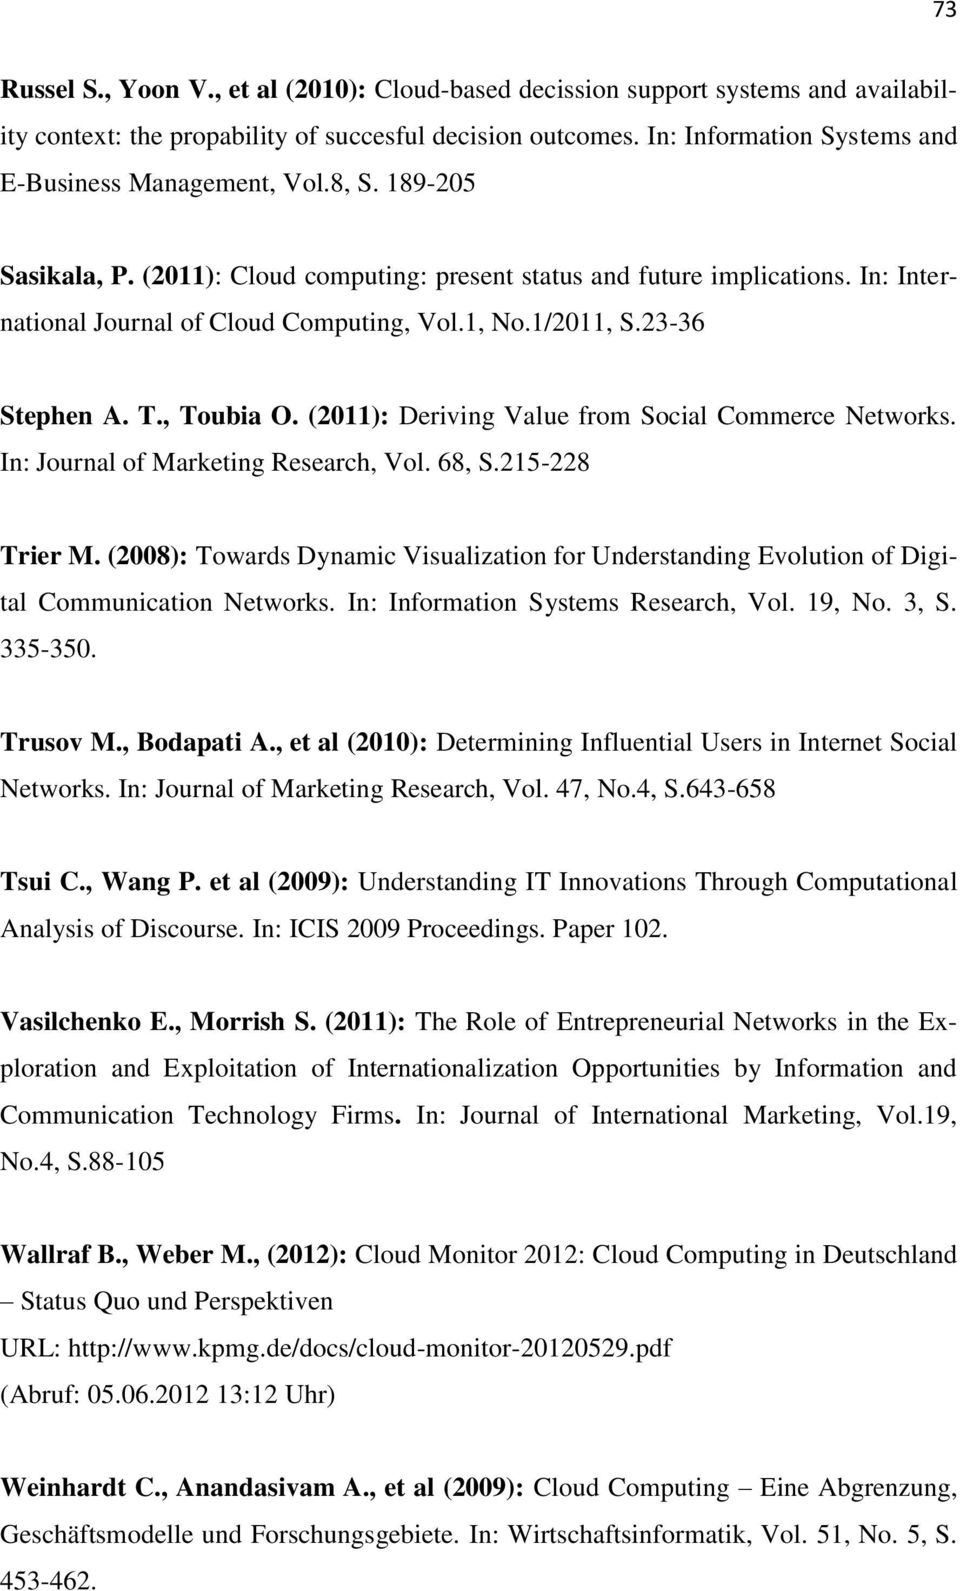 1, No.1/2011, S.23-36 Stephen A. T., Toubia O. (2011): Deriving Value from Social Commerce Networks. In: Journal of Marketing Research, Vol. 68, S.215-228 Trier M.